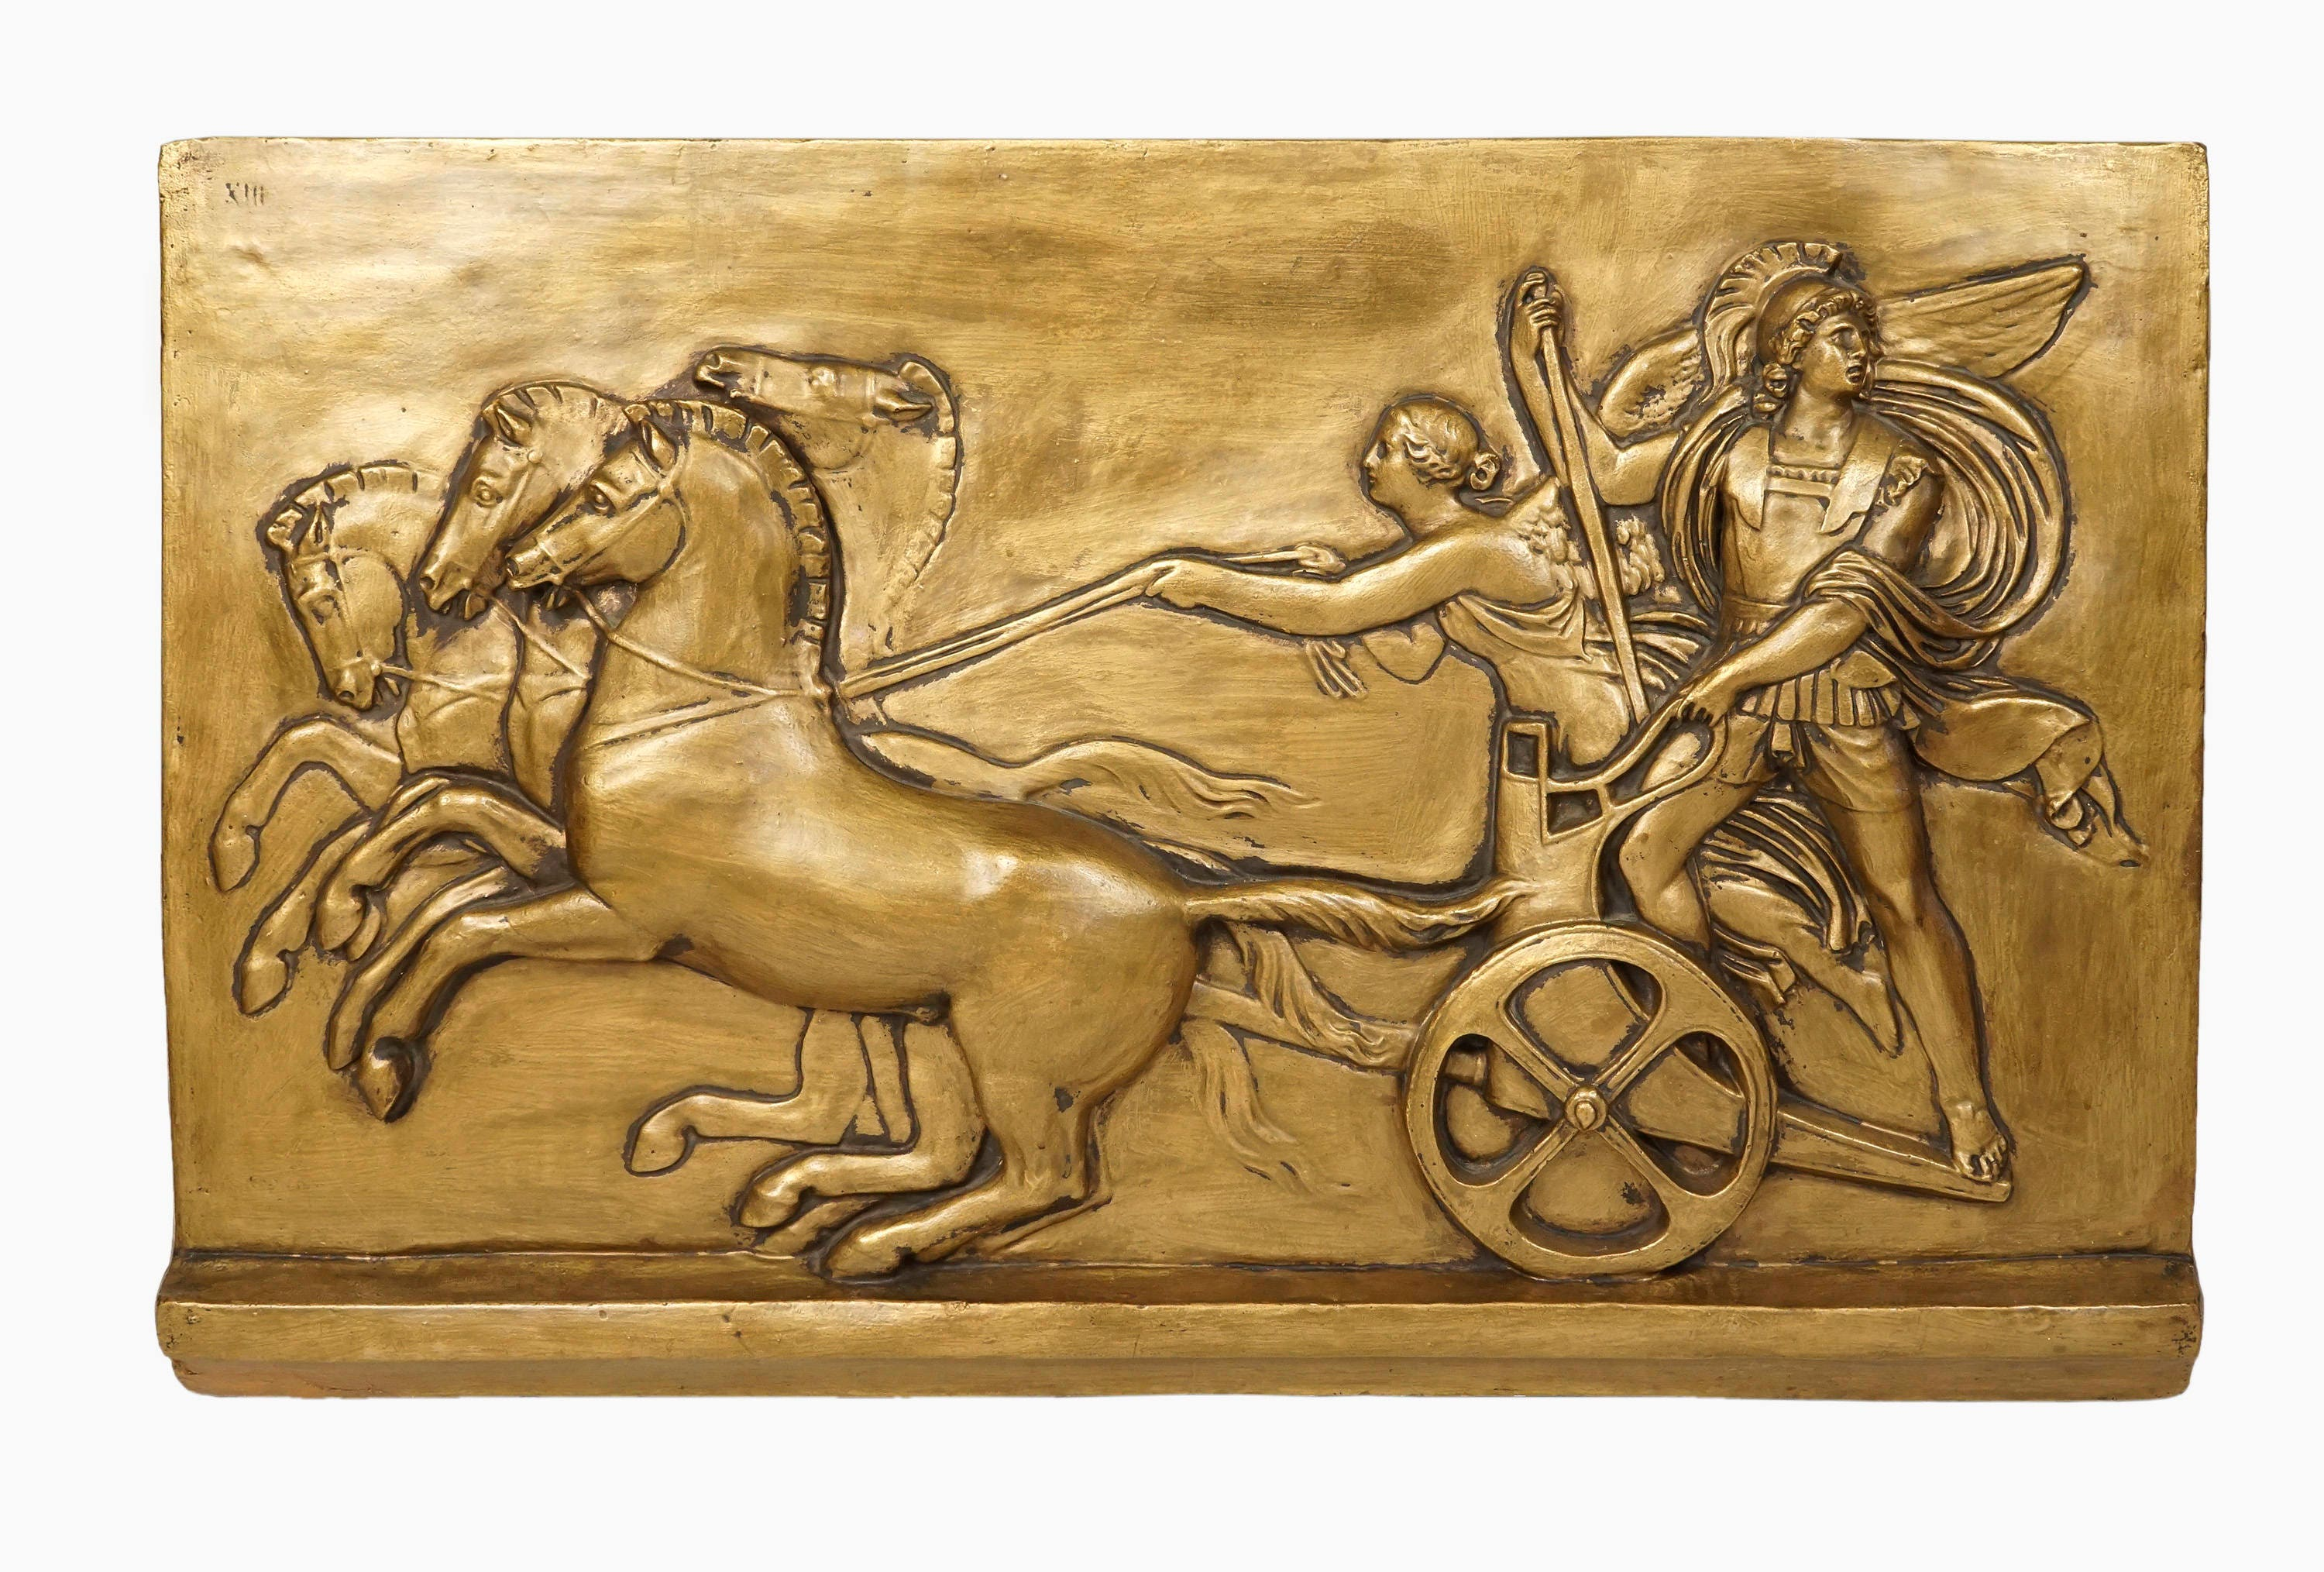 Academic Plaster Relief Roman Frieze Chariot Race King